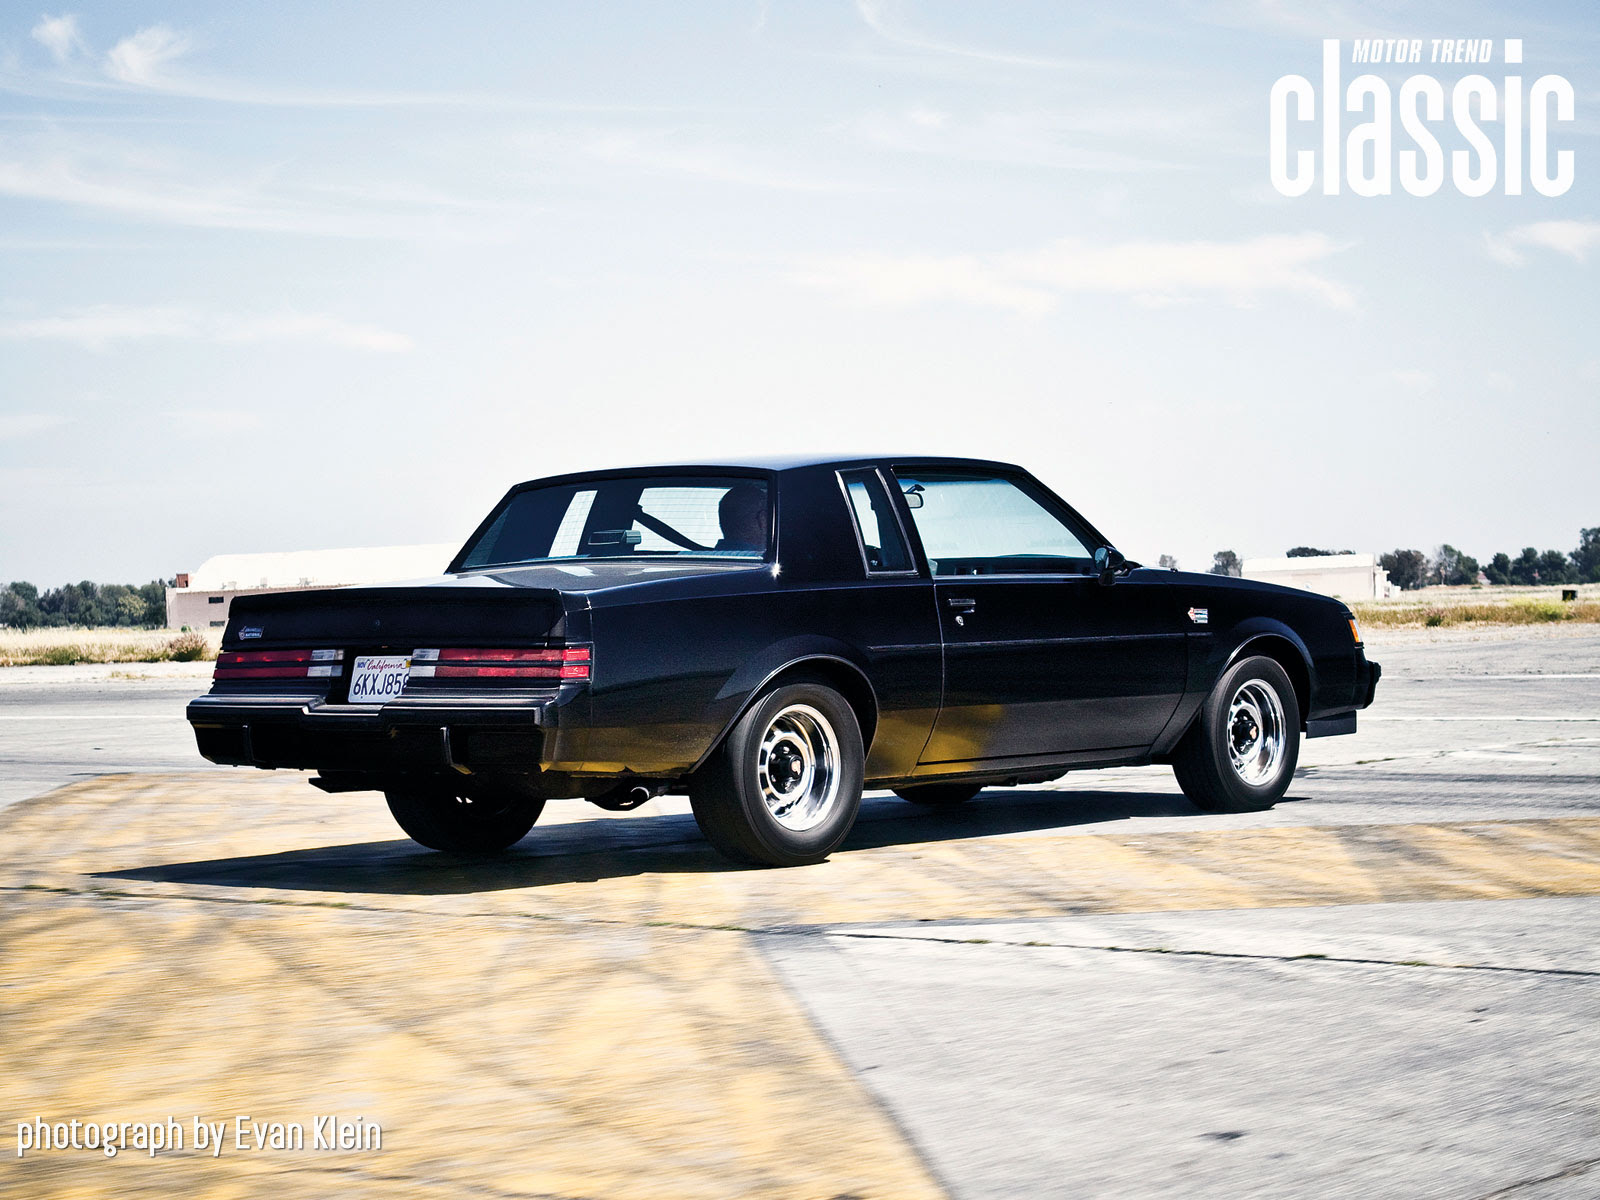 1987 buick regal grand national wallpaper gallery  motor